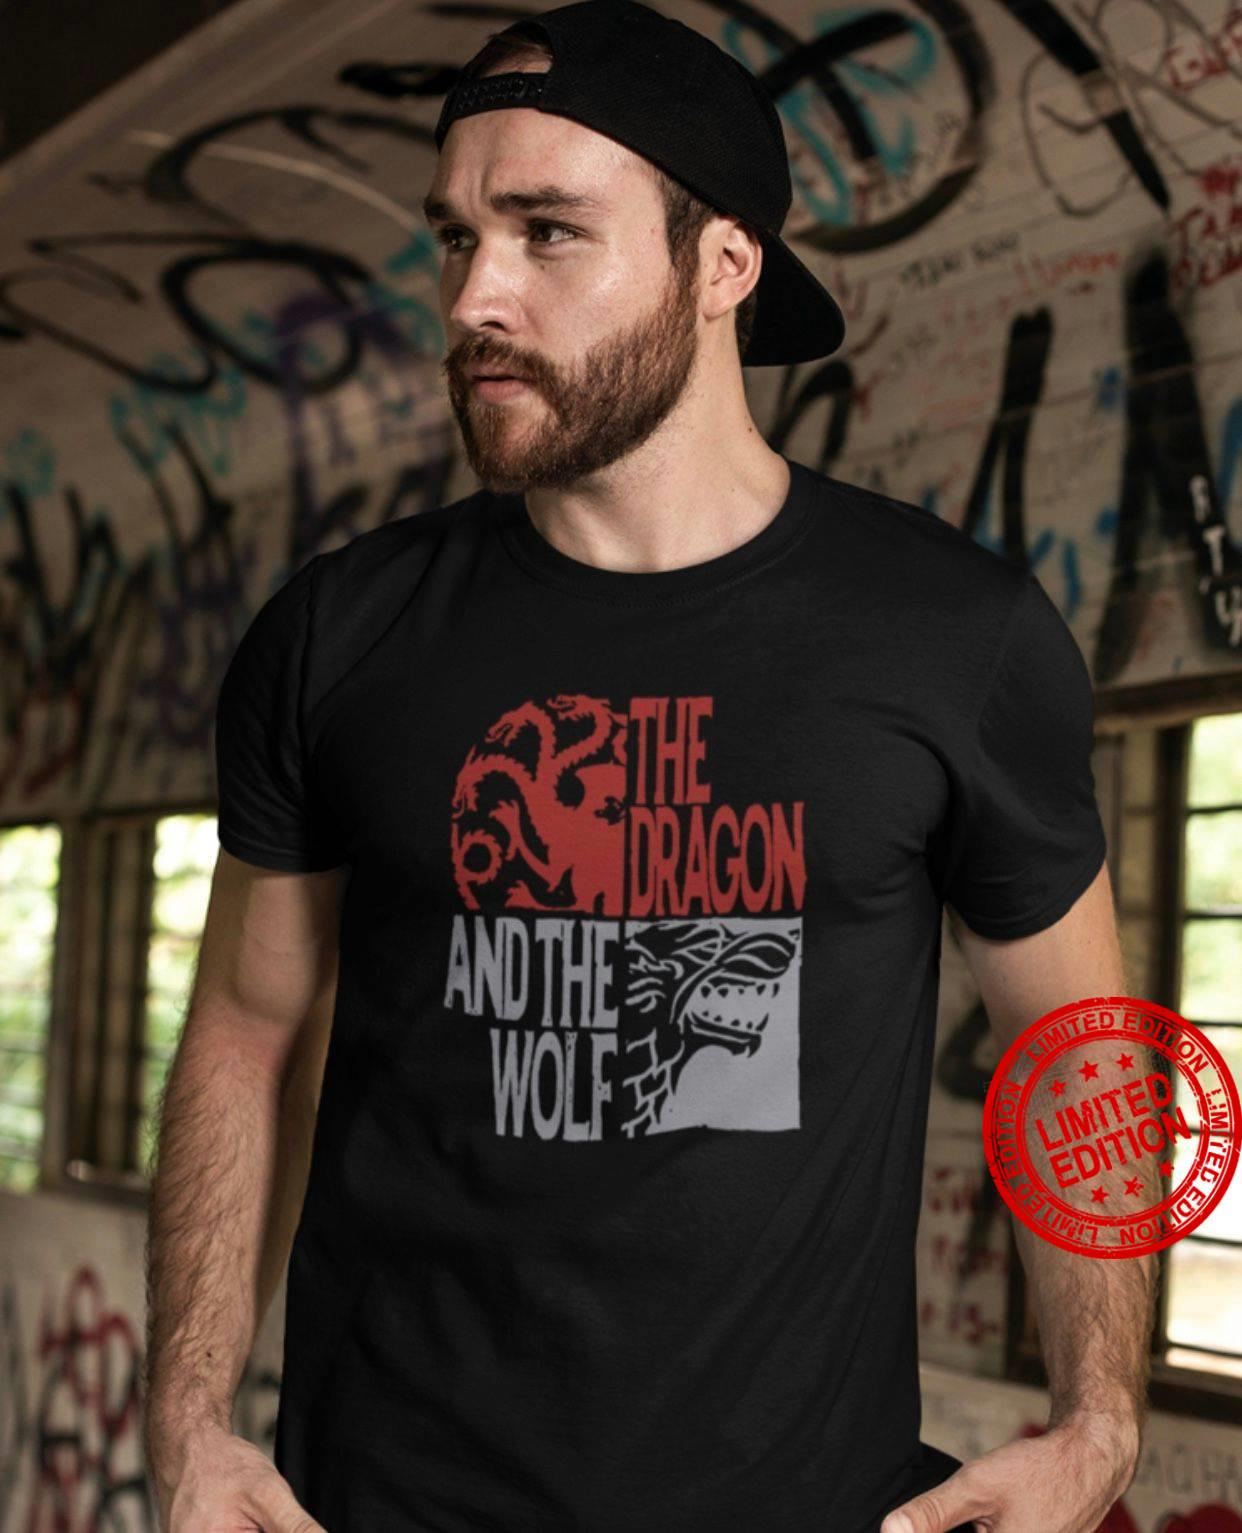 The Dragon And The Wolf Shirt